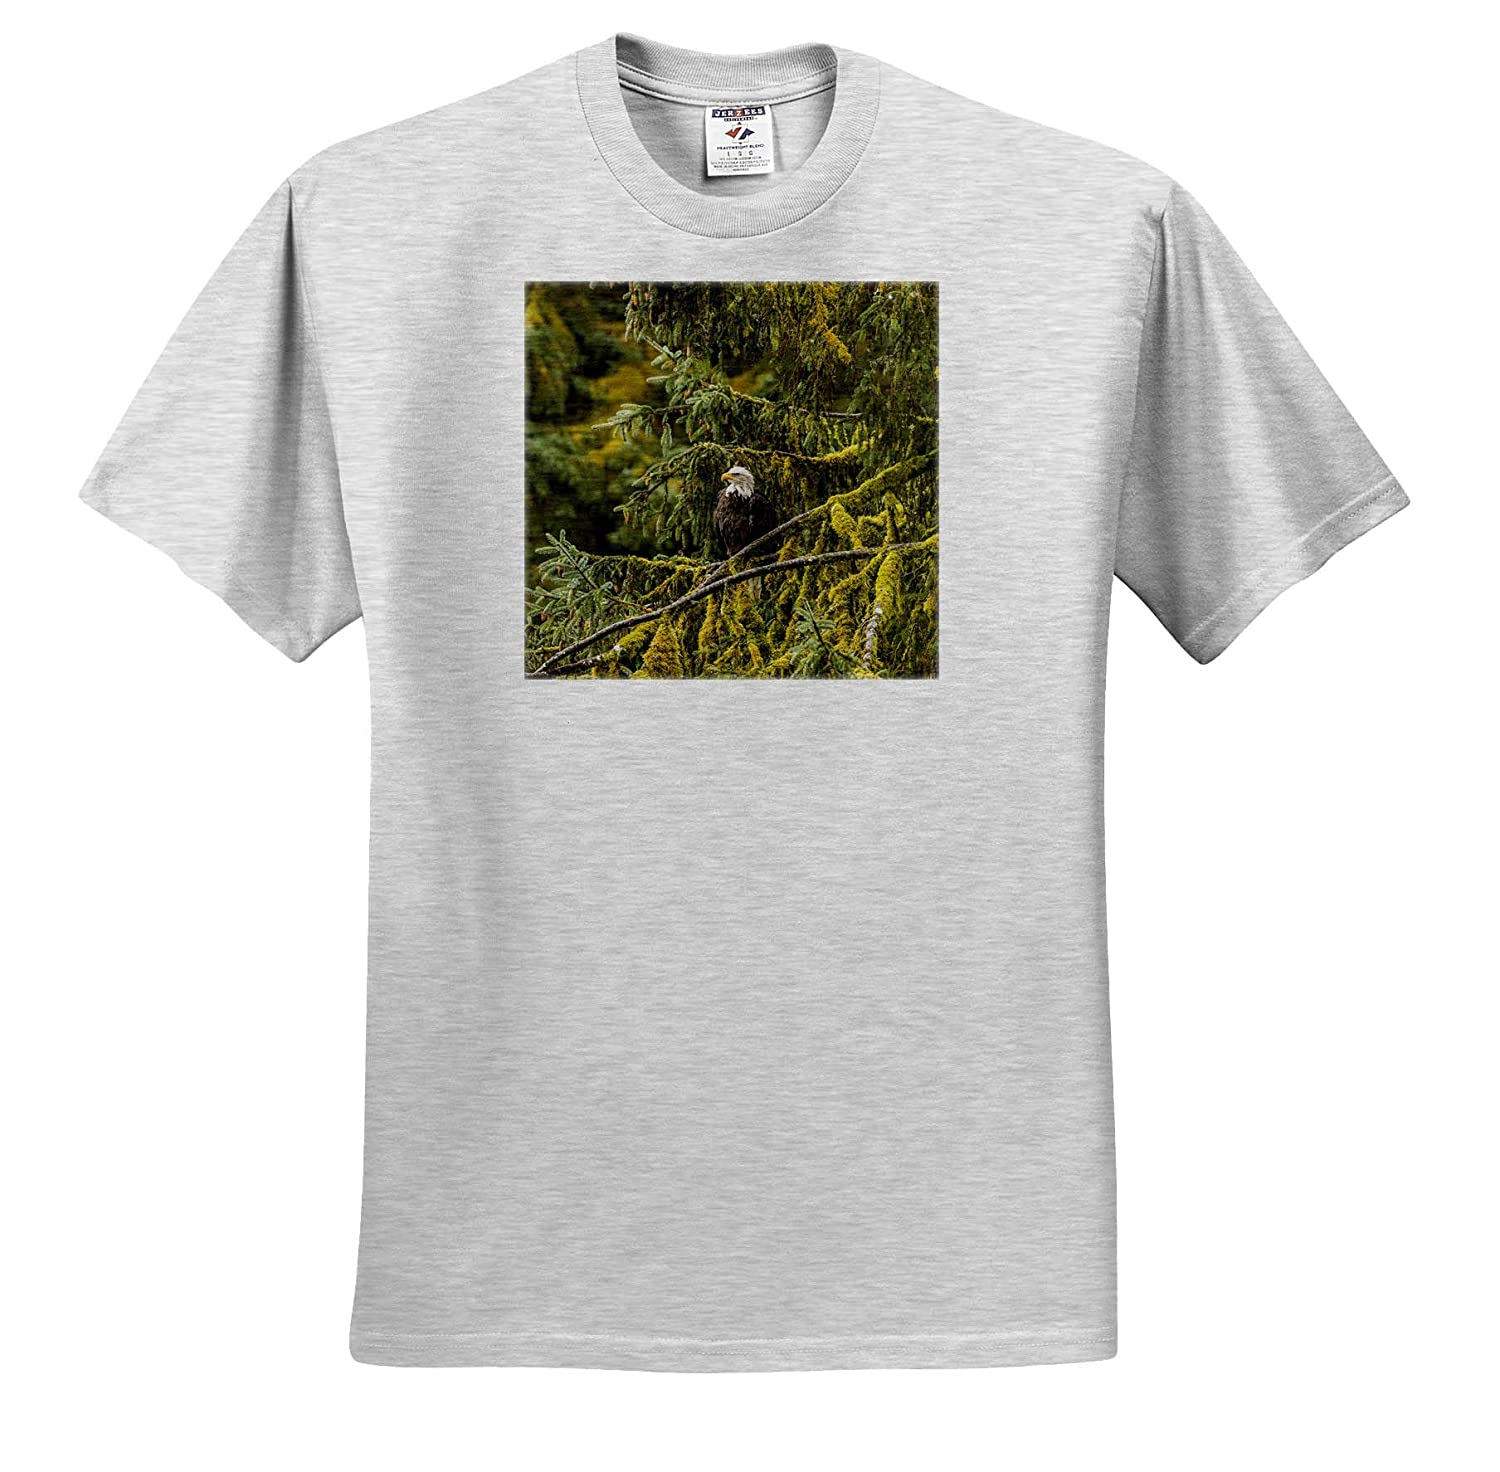 ts/_314417 - Adult T-Shirt XL 3dRose Danita Delimont Tongass National Forest Bald Eagle in Tree Alaska Eagles USA